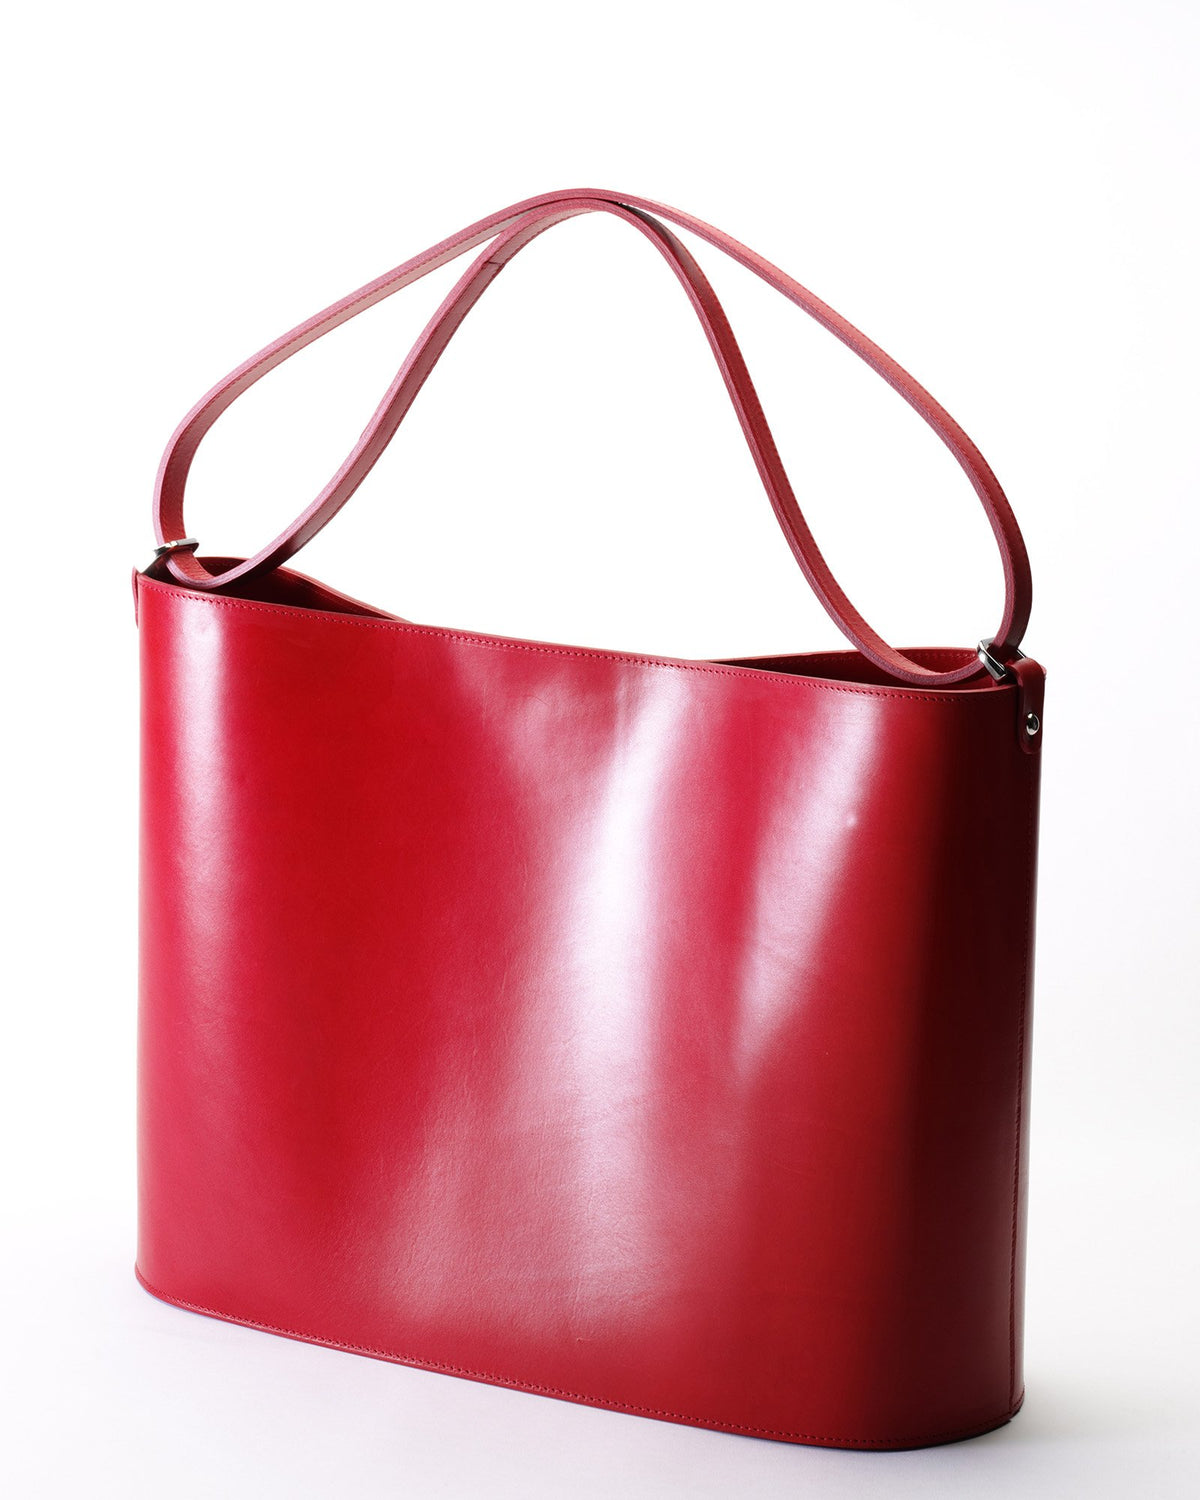 The Darlingmax Large Tote - Red